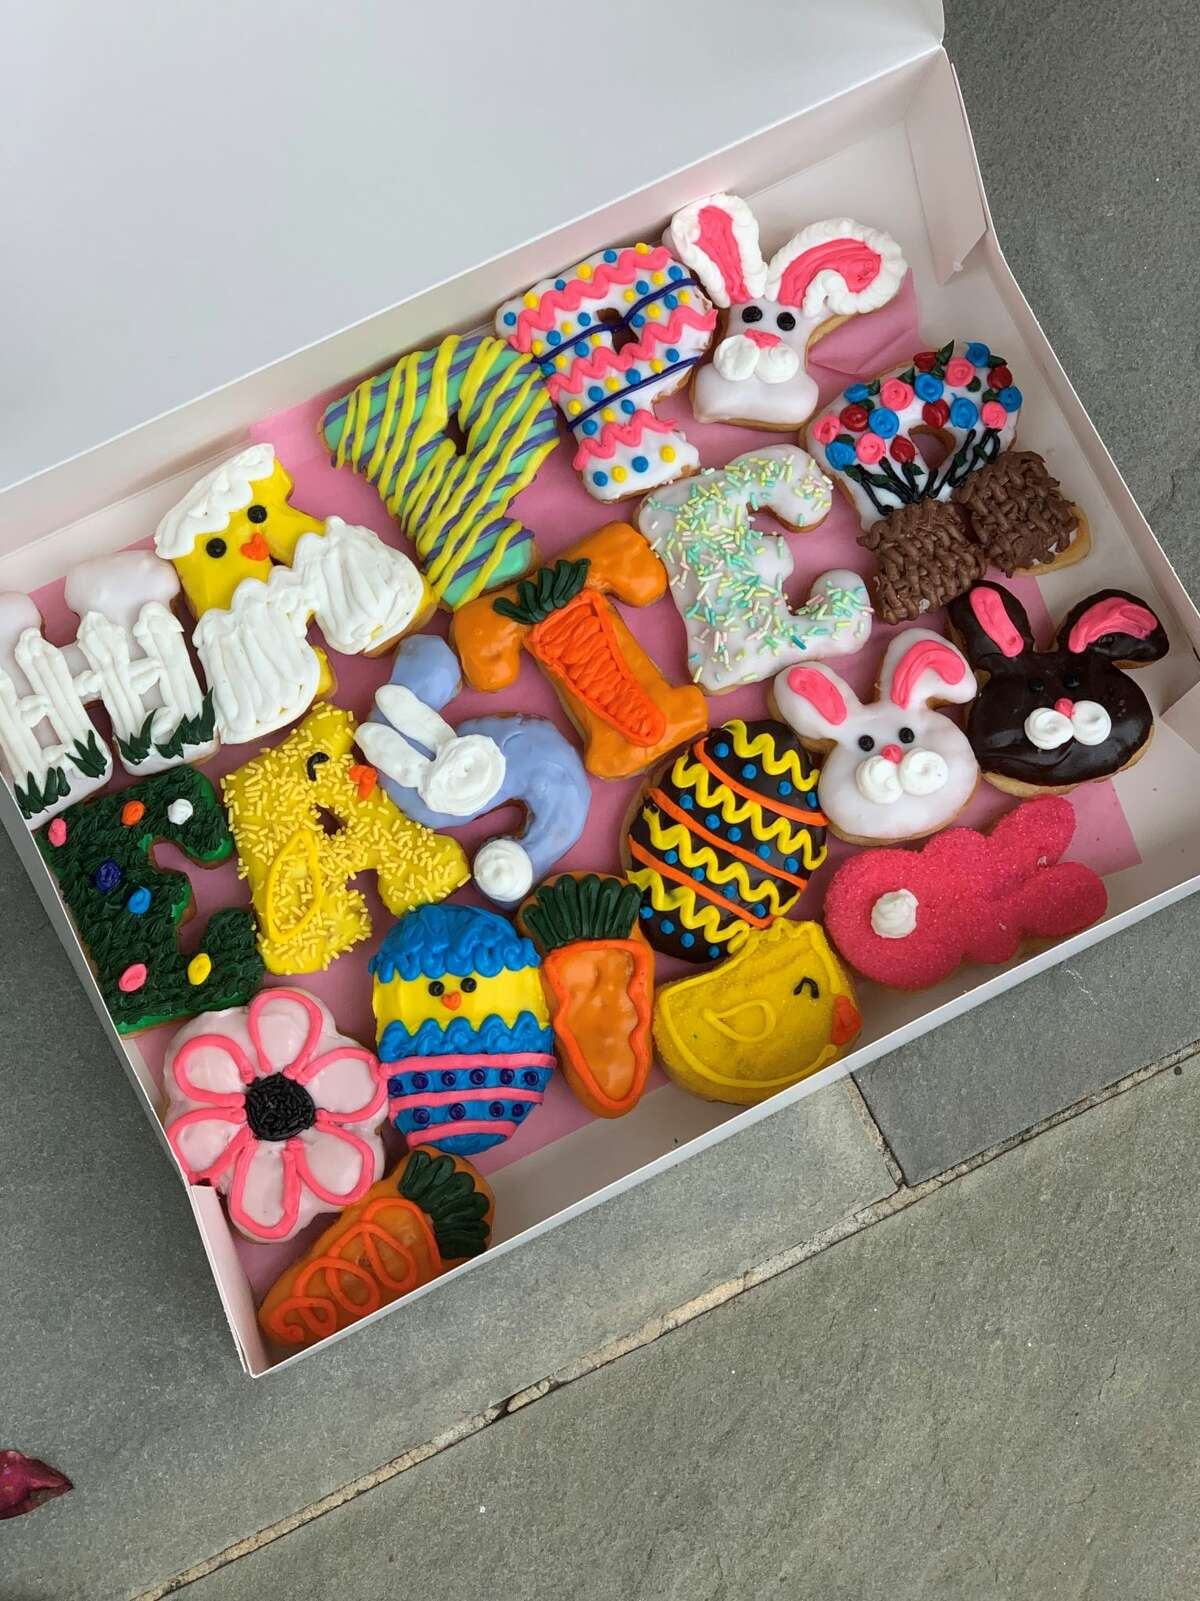 """River Oaks Donuts is offering alphabet donuts in a """"Happy Easter"""" message for the holiday."""